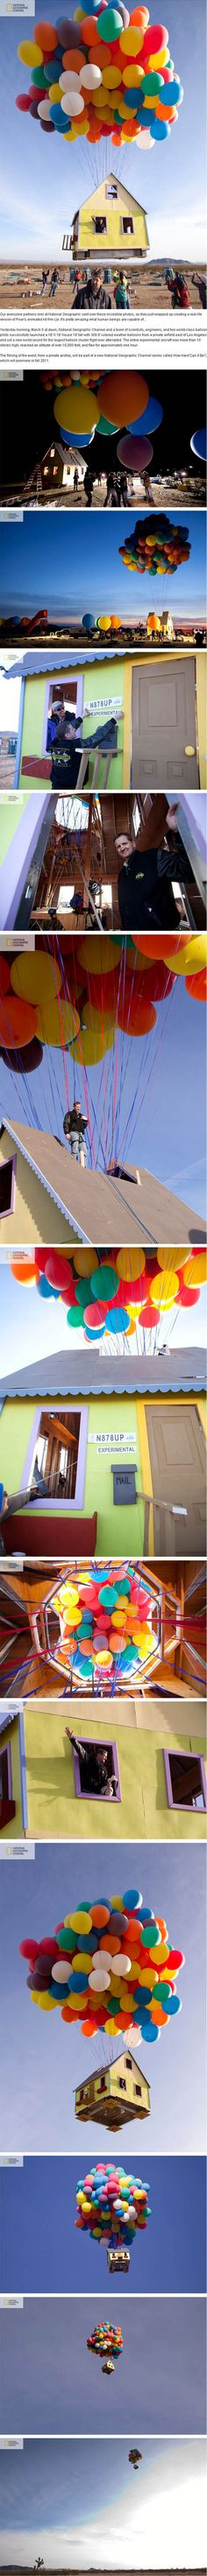 real life 'up'.  on march 5th, 2011, the national geographic channel and a team of scientists, engineers, and two world-class balloon pilots successfully launched a 16'X16' house, 18' tall with 300 8' coloured weather balloons from a private airfield east of los angeles and set a new world record.  the entire experimental aircraft was more than 10 stories high, reached an altitude of over 10,000 feet and flew for approximately one hour.